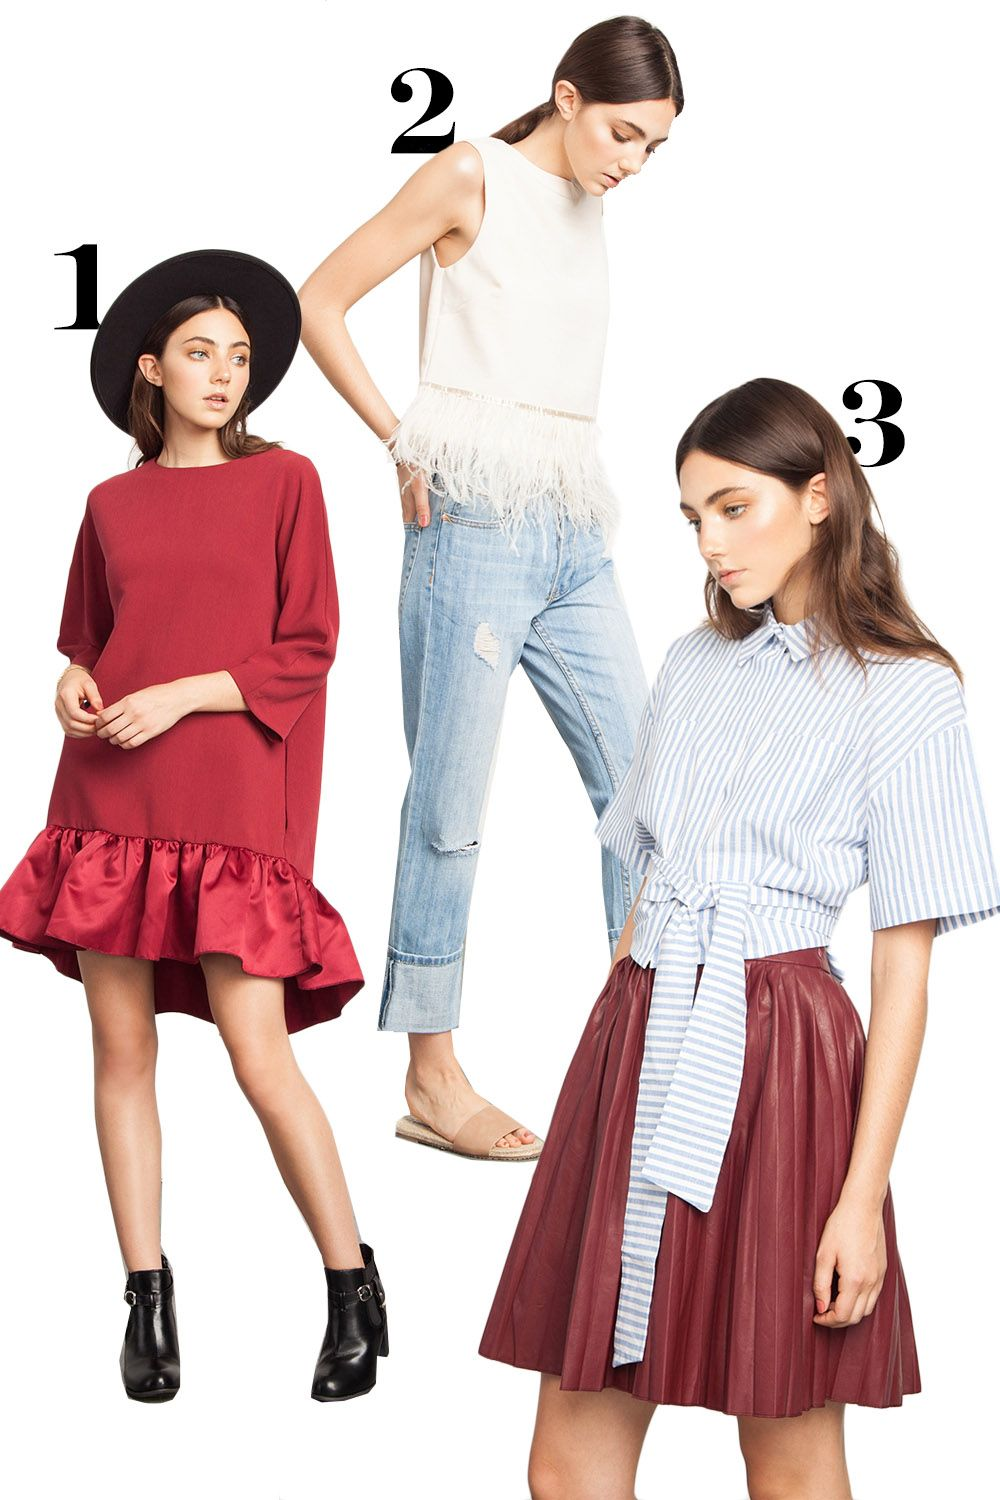 "<p>1. High-low dress, $78, <a href=""http://www.acommonspace.com/simone-high-low-dress"">acommonspace.com</a>.</p><p>2. Cuffed jeans, $30, <a href=""http://www.acommonspace.com/knee-rip-cuffed-jeans"">acommonspace.com</a>.</p><p>3. Tie-waist striped shirt, $38, <a href=""http://www.acommonspace.com/tie-waist-stripes-shirt"">acommonspace.com</a>.</p>"